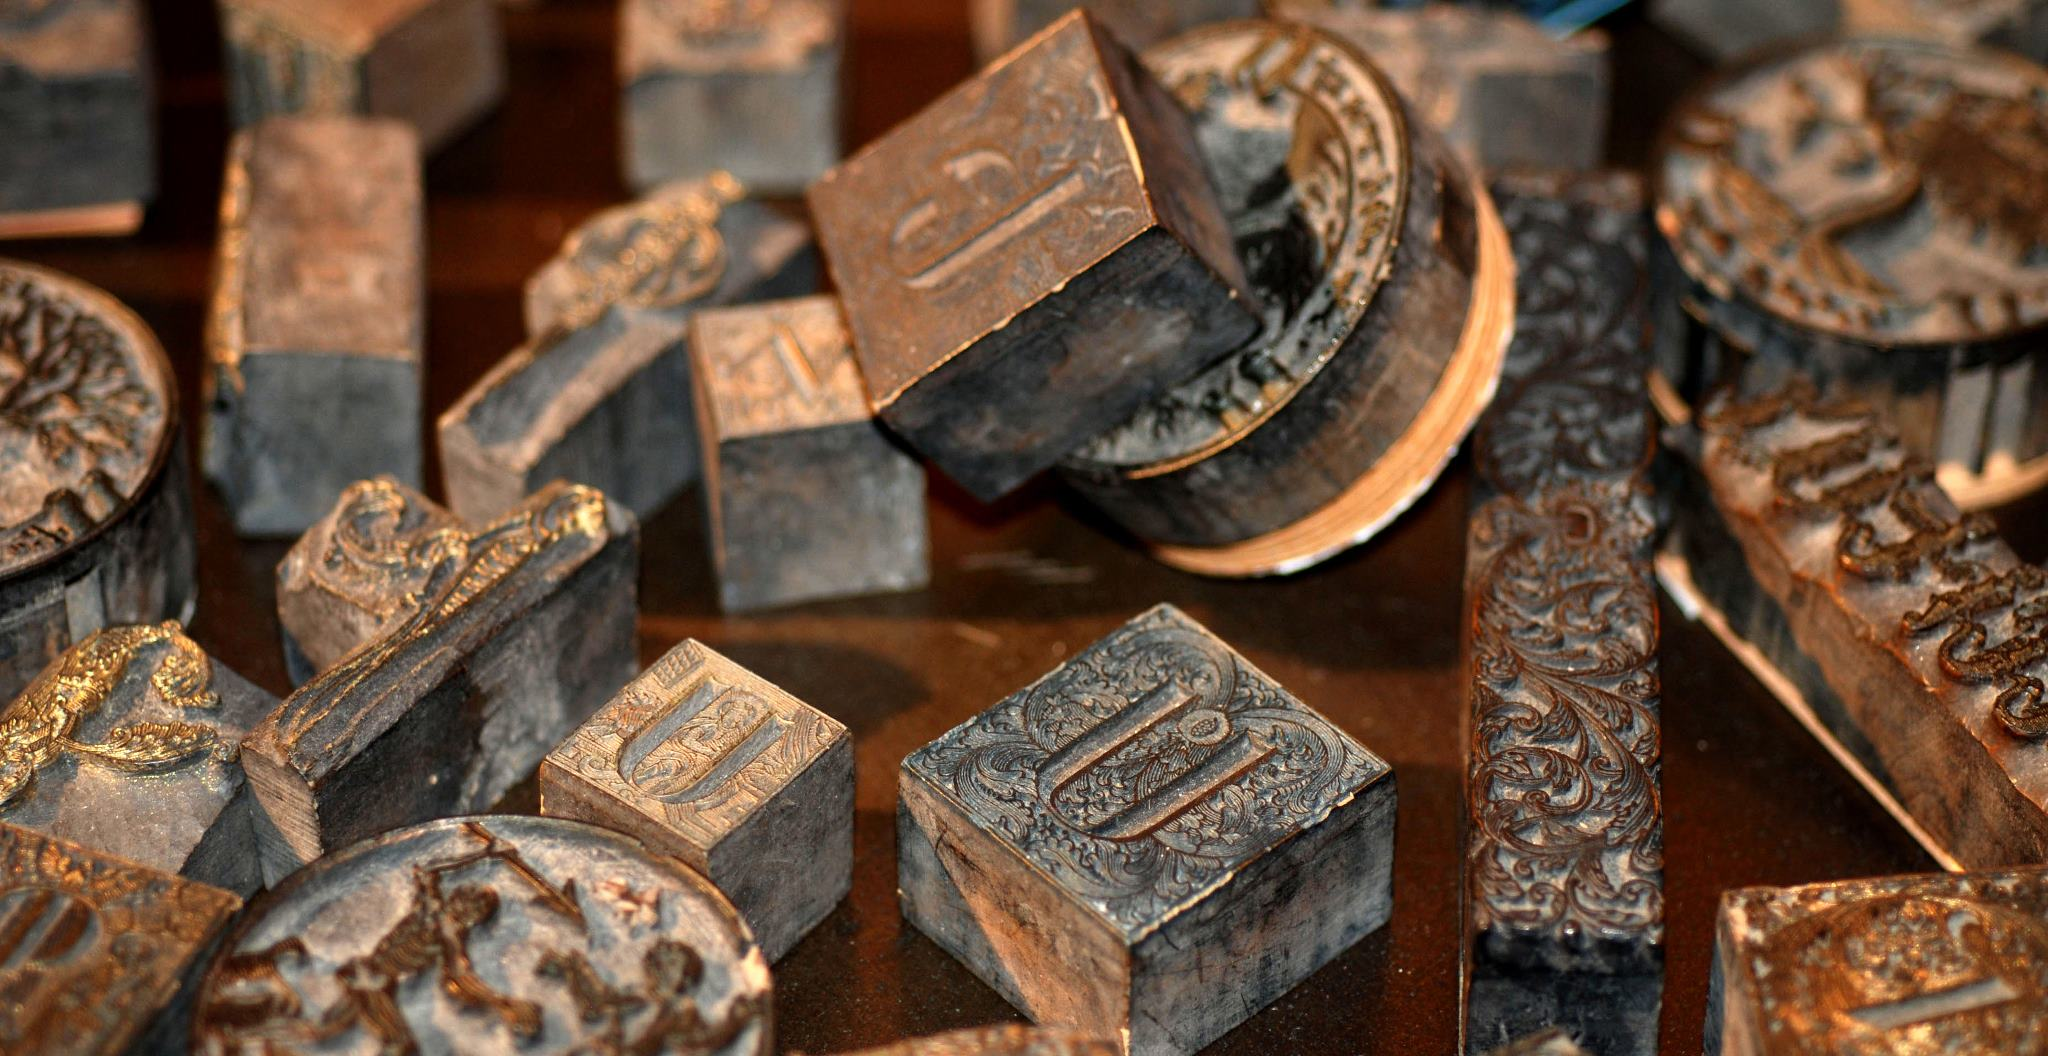 http://peopleofar.files.Wordpress.com/2013/03/armenian-printing-blocks-17th-century-the-british-library.jpg